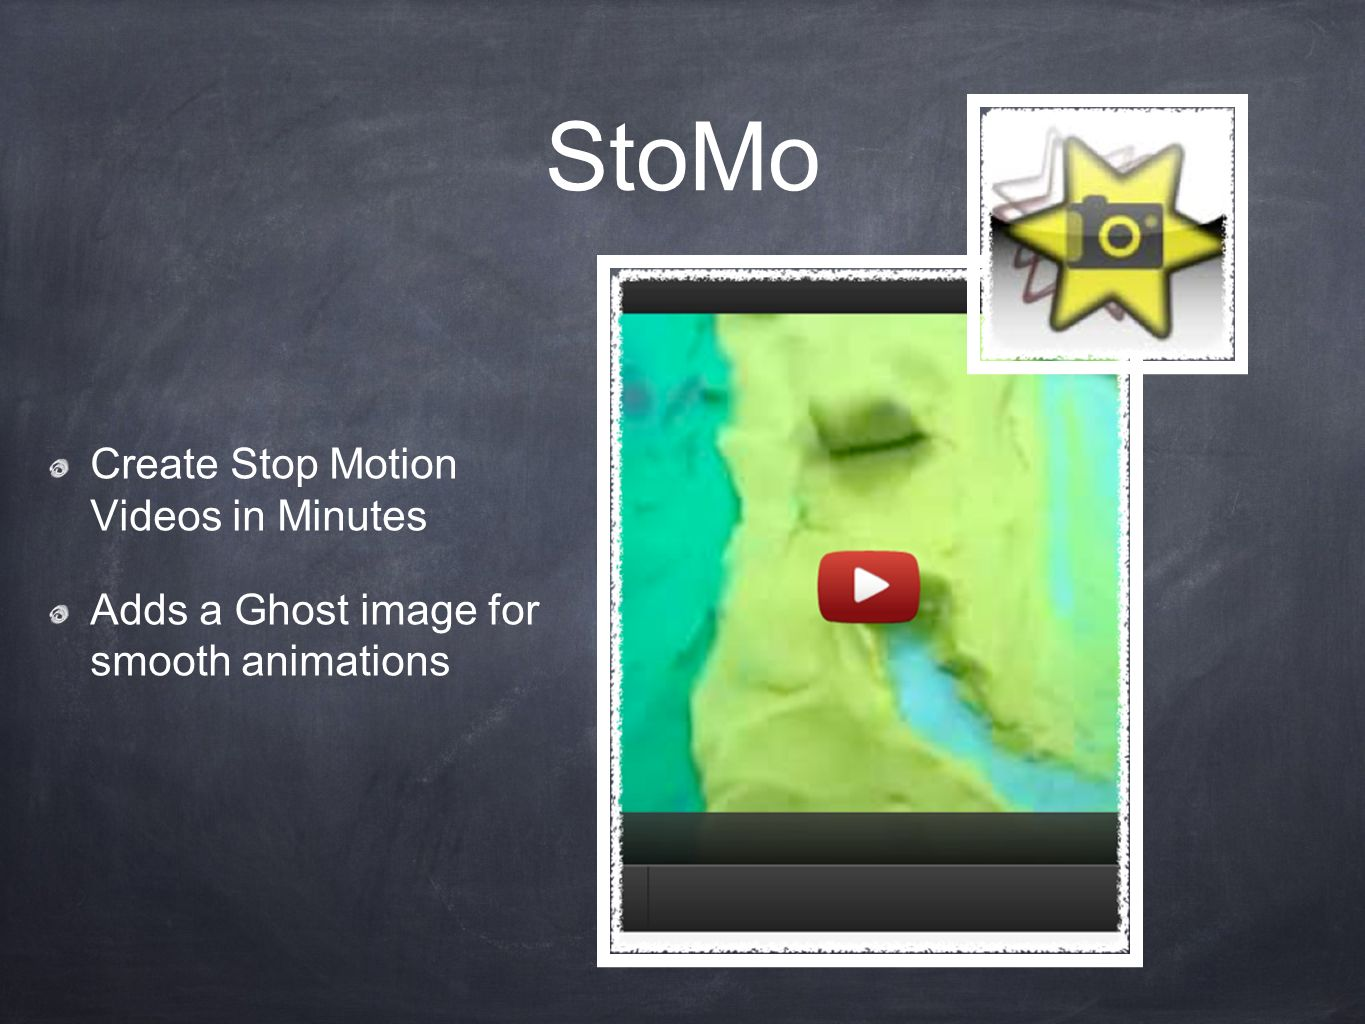 StoMo Create Stop Motion Videos in Minutes Adds a Ghost image for smooth animations